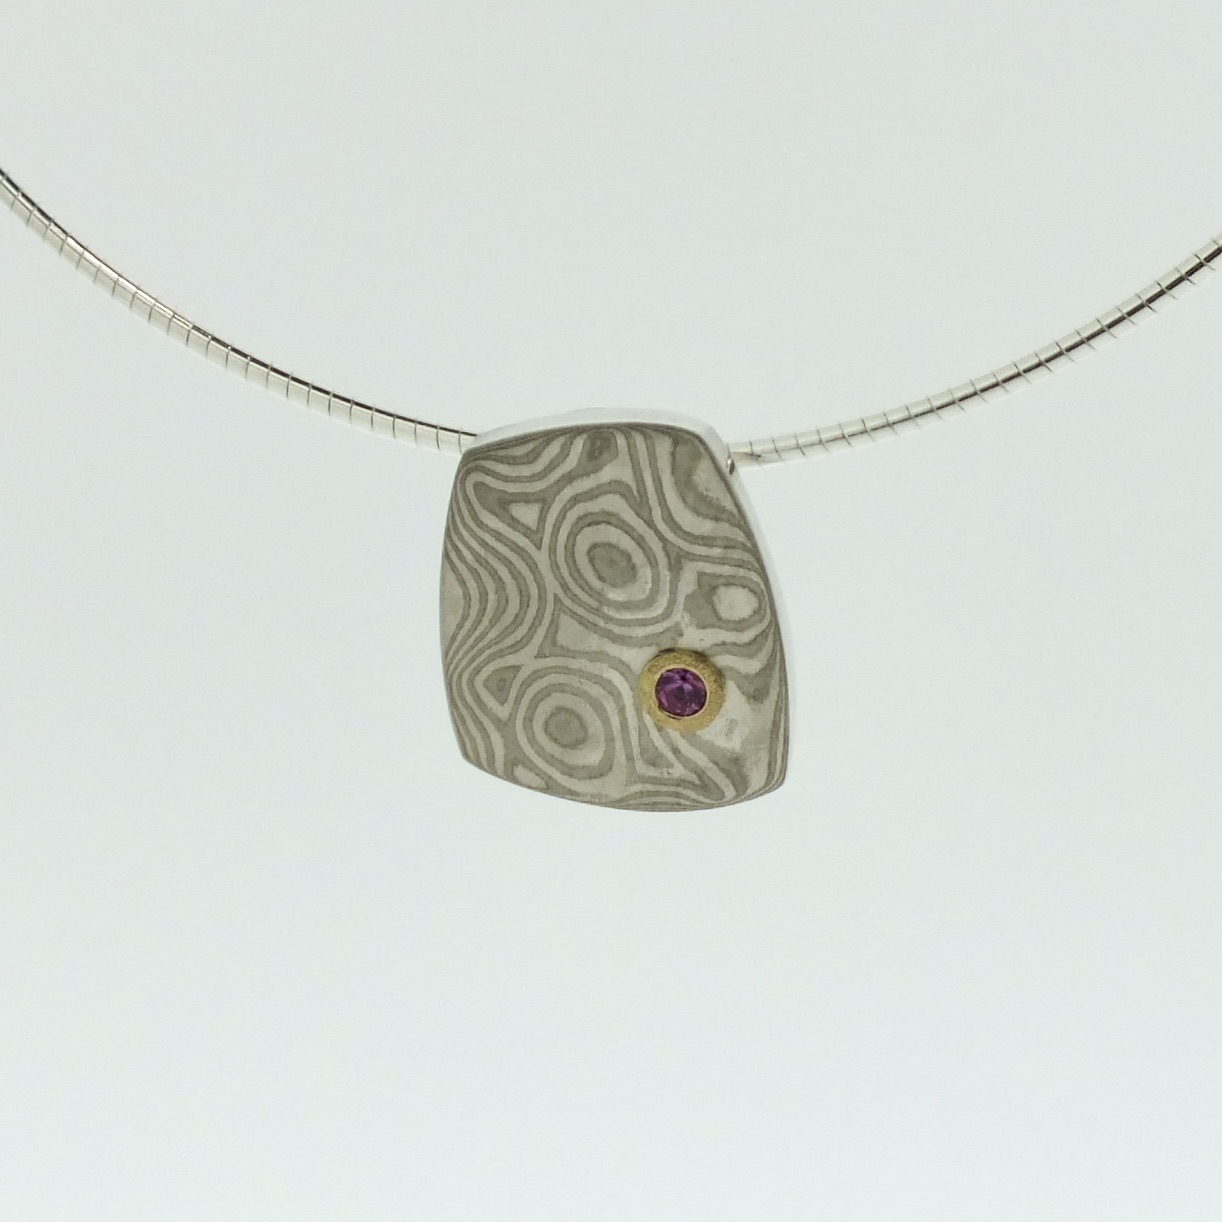 18k white gold and silver mokume gane small Fower Neukit pendant with pink sapphire in 22k gold setting